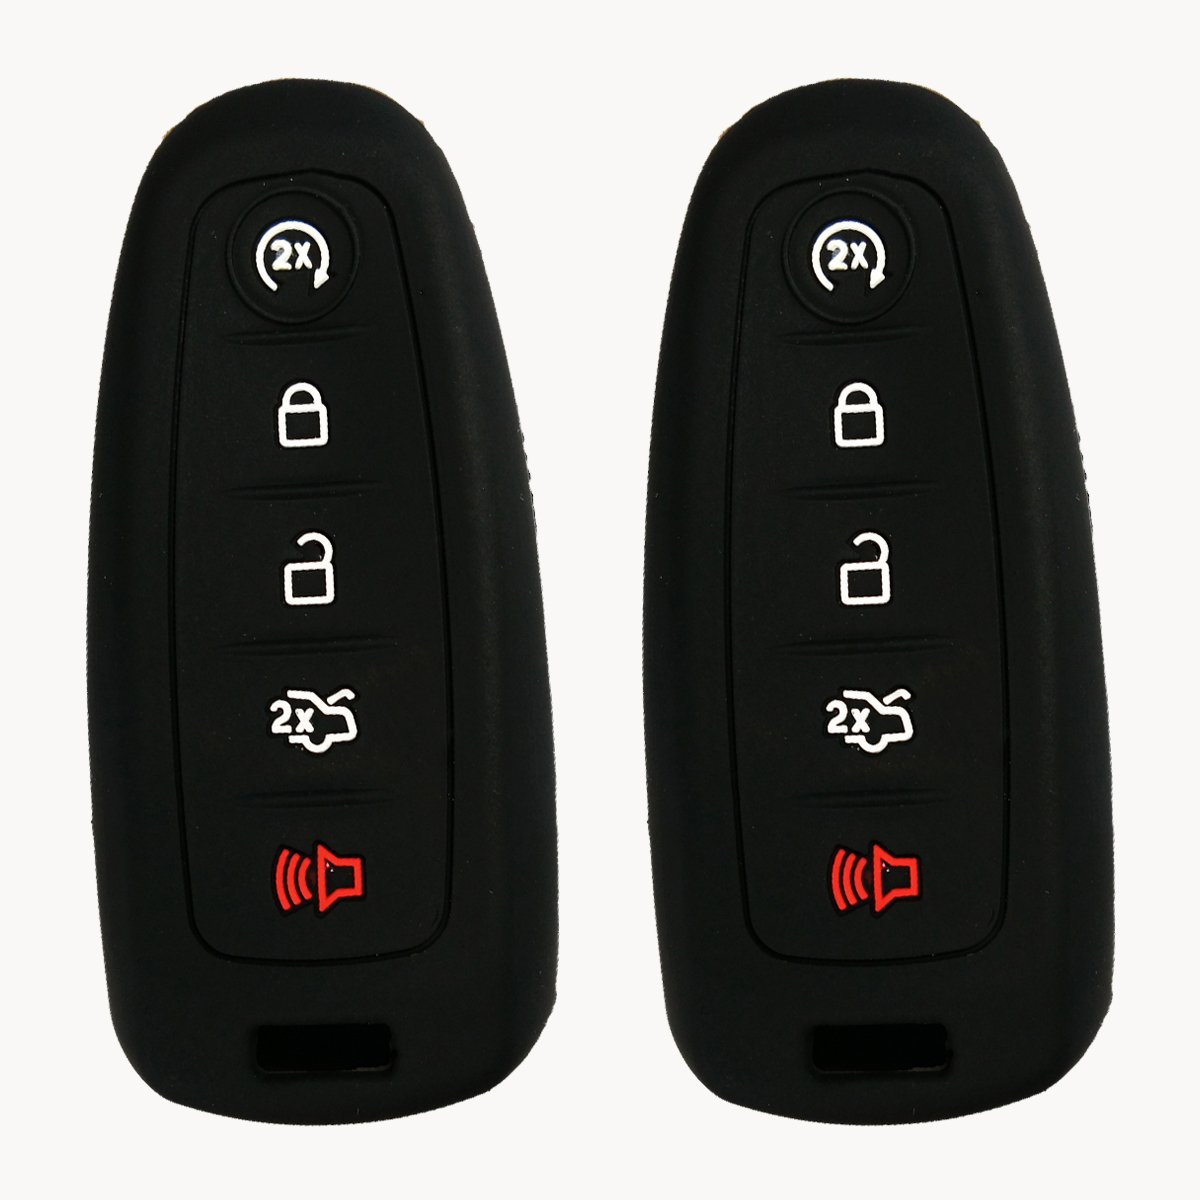 2Pcs Coolbestda Silicone Key Fob Remote Cover Case Skin Jacket Holder for Lincoln Ford Escape Explorer Focus Taurus Black 5 Buttons